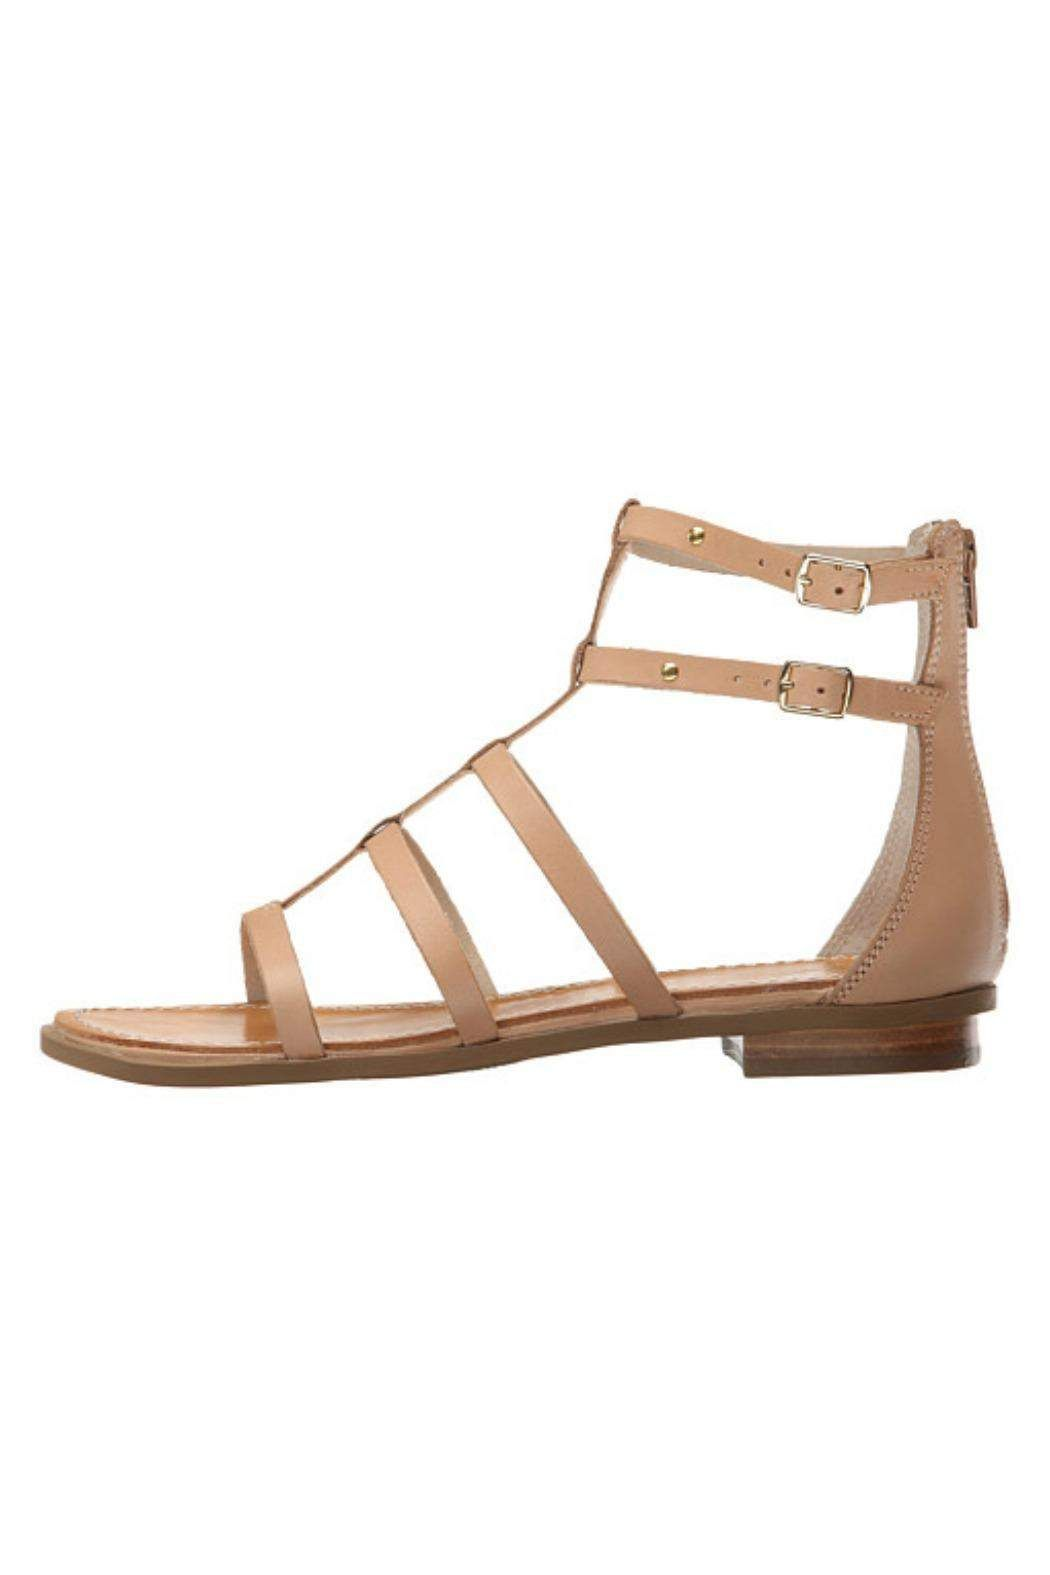 fba4c221001bc Back zipper closure. Double ankle straps with adjustable buckles. Caged  open toe silhouette.